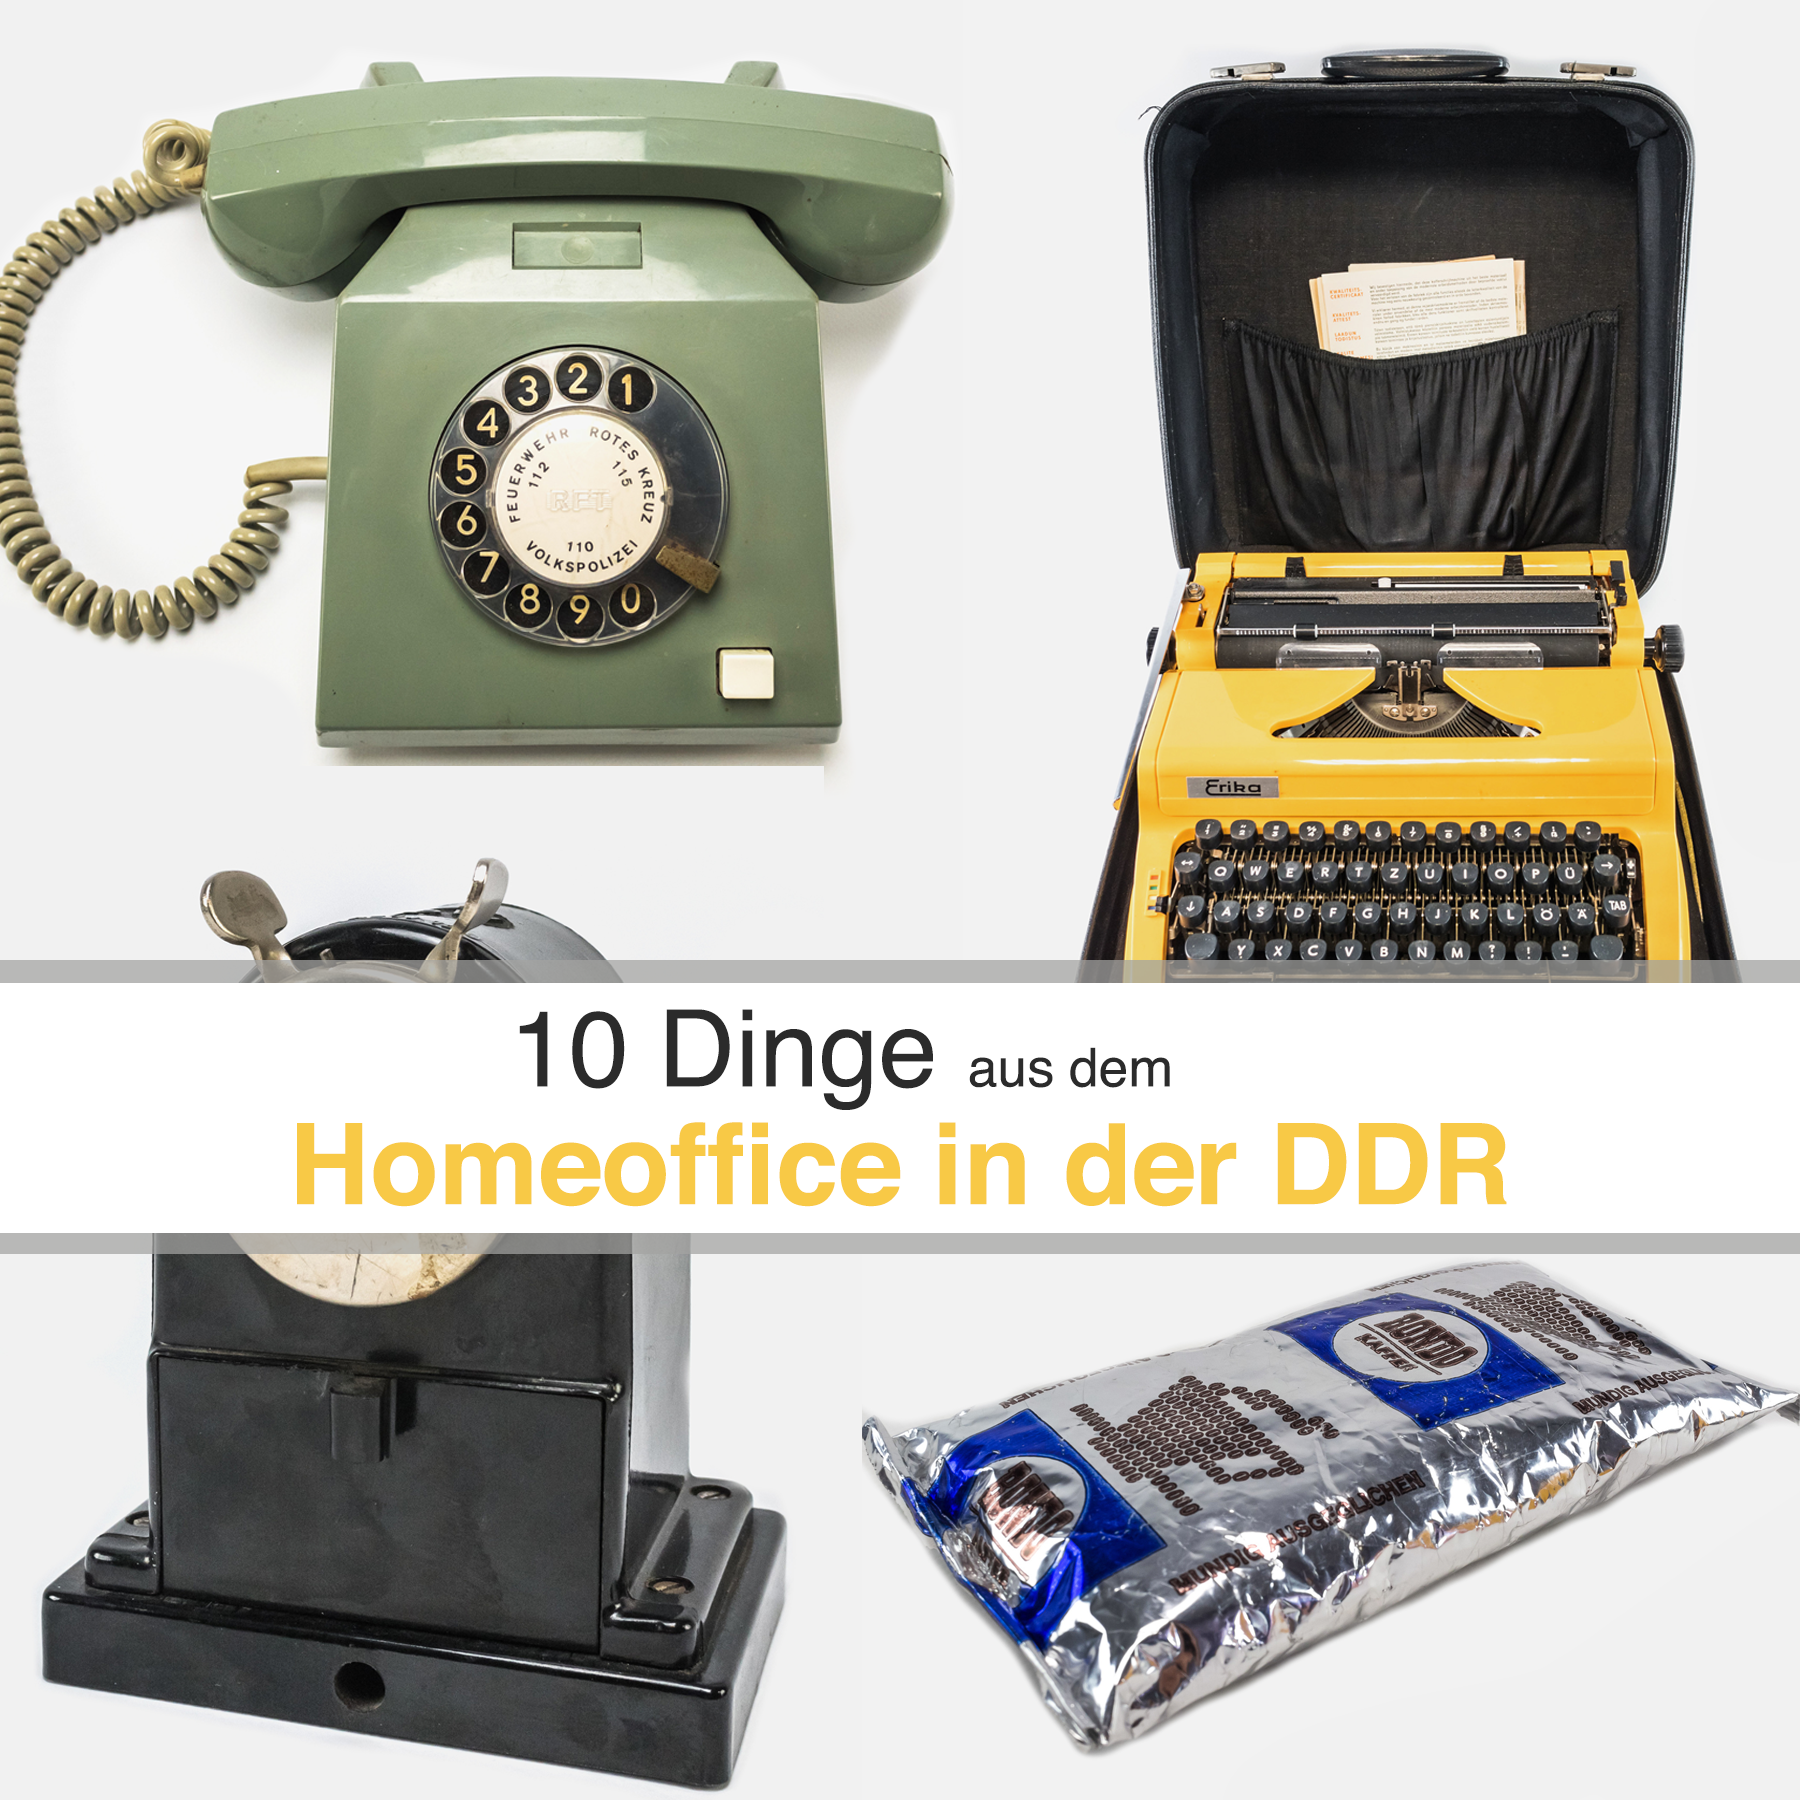 10 Dinge aus dem Homeoffice in der DDR